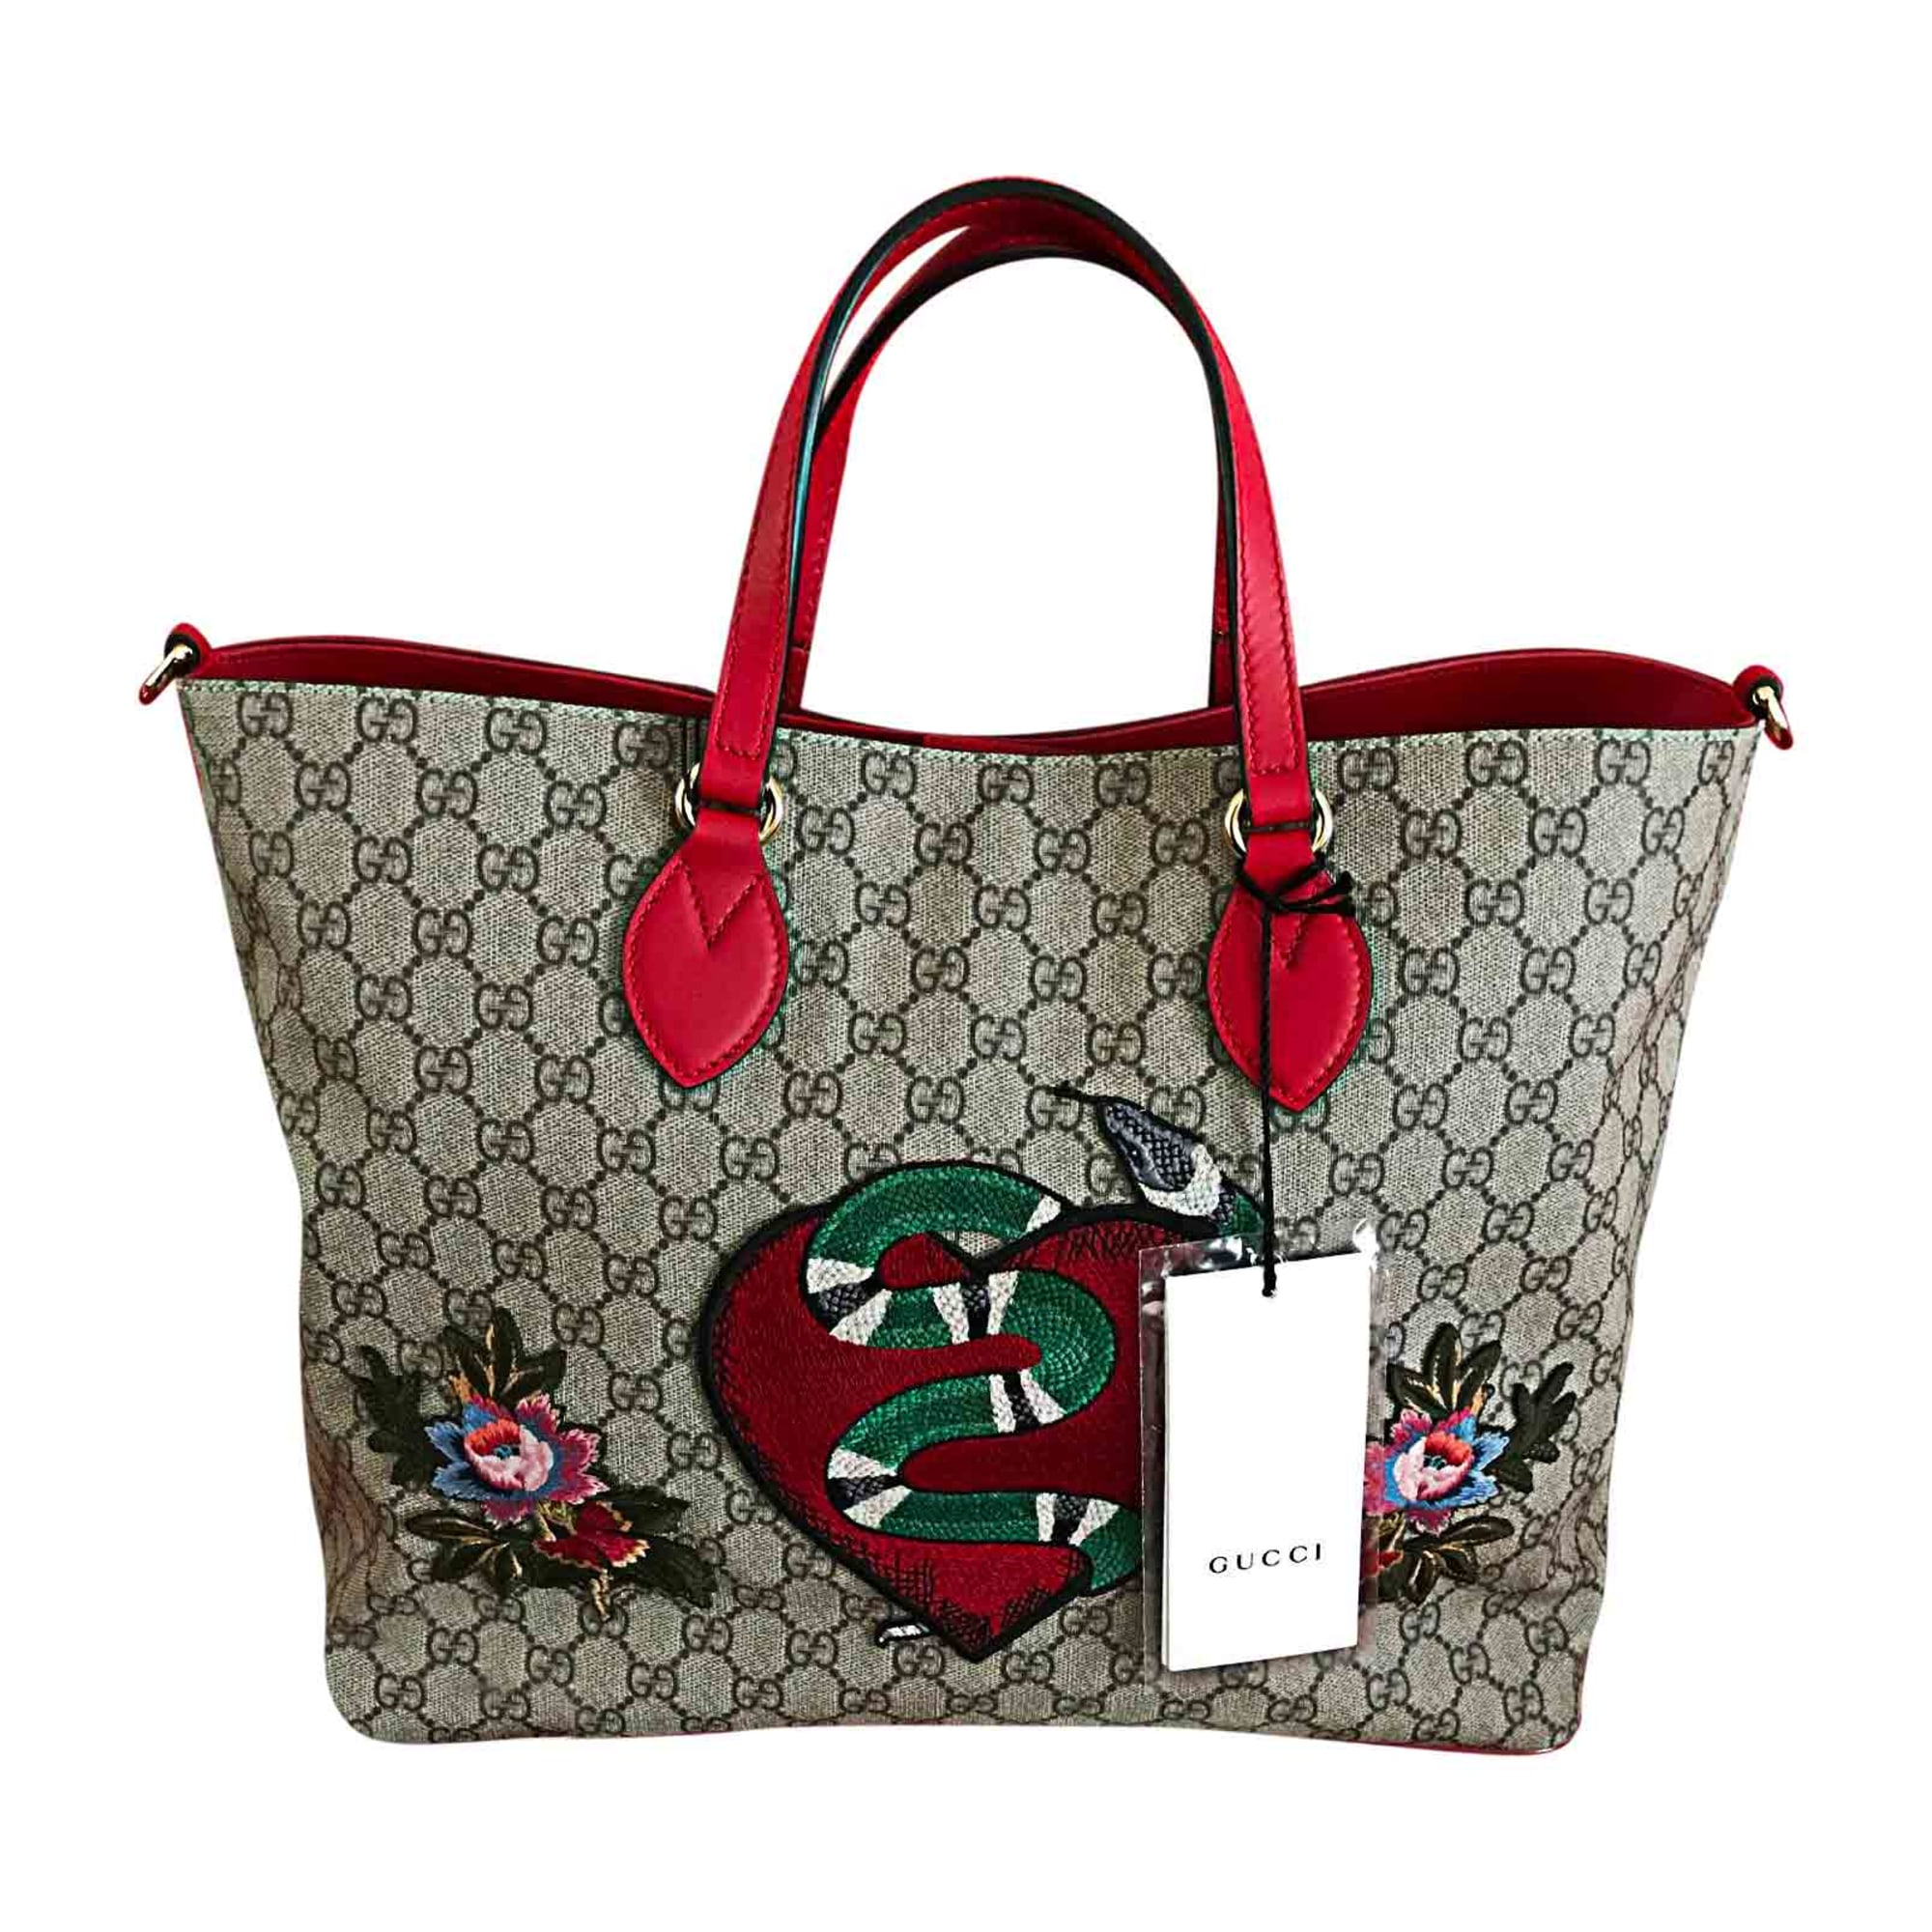 Non-Leather Oversize Bag GUCCI Multicolor